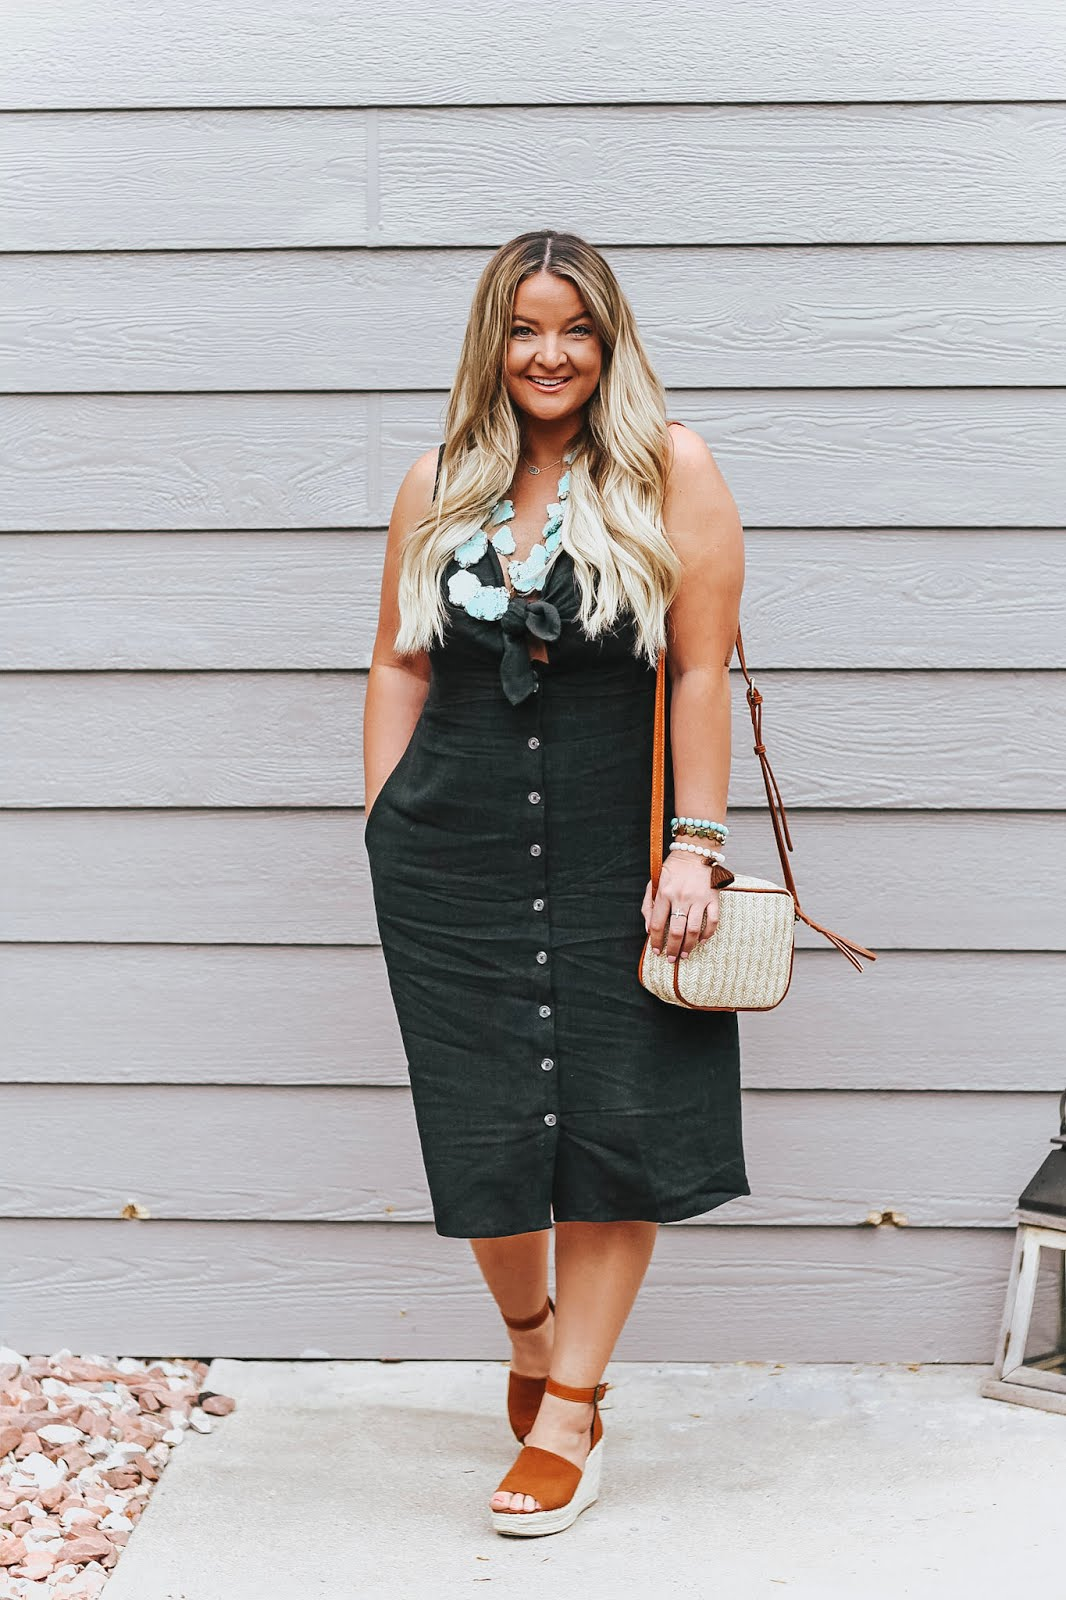 The perfect Casual Little Black Dress styled by popular Colorado fashion blogger, Delayna Denaye